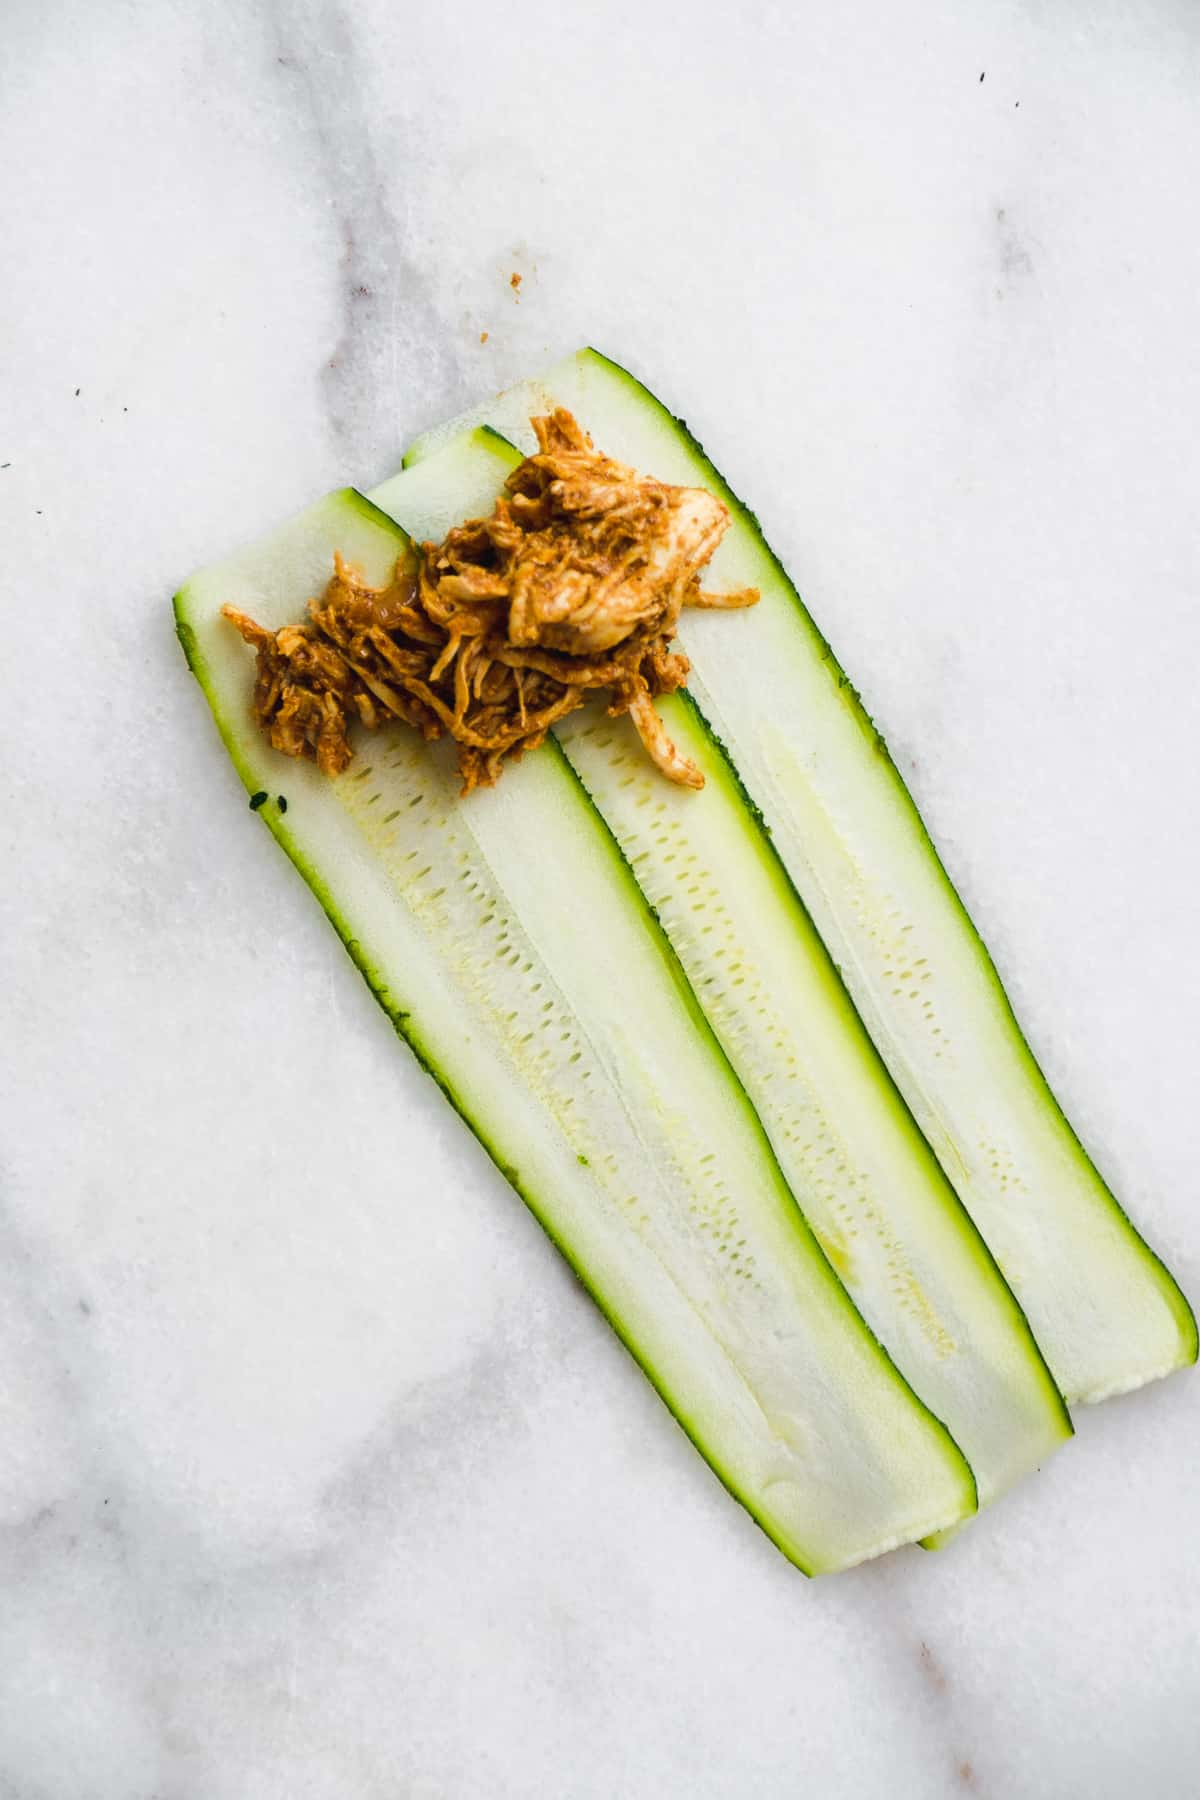 Zucchini strips with pulled chicken about to be rolled up.